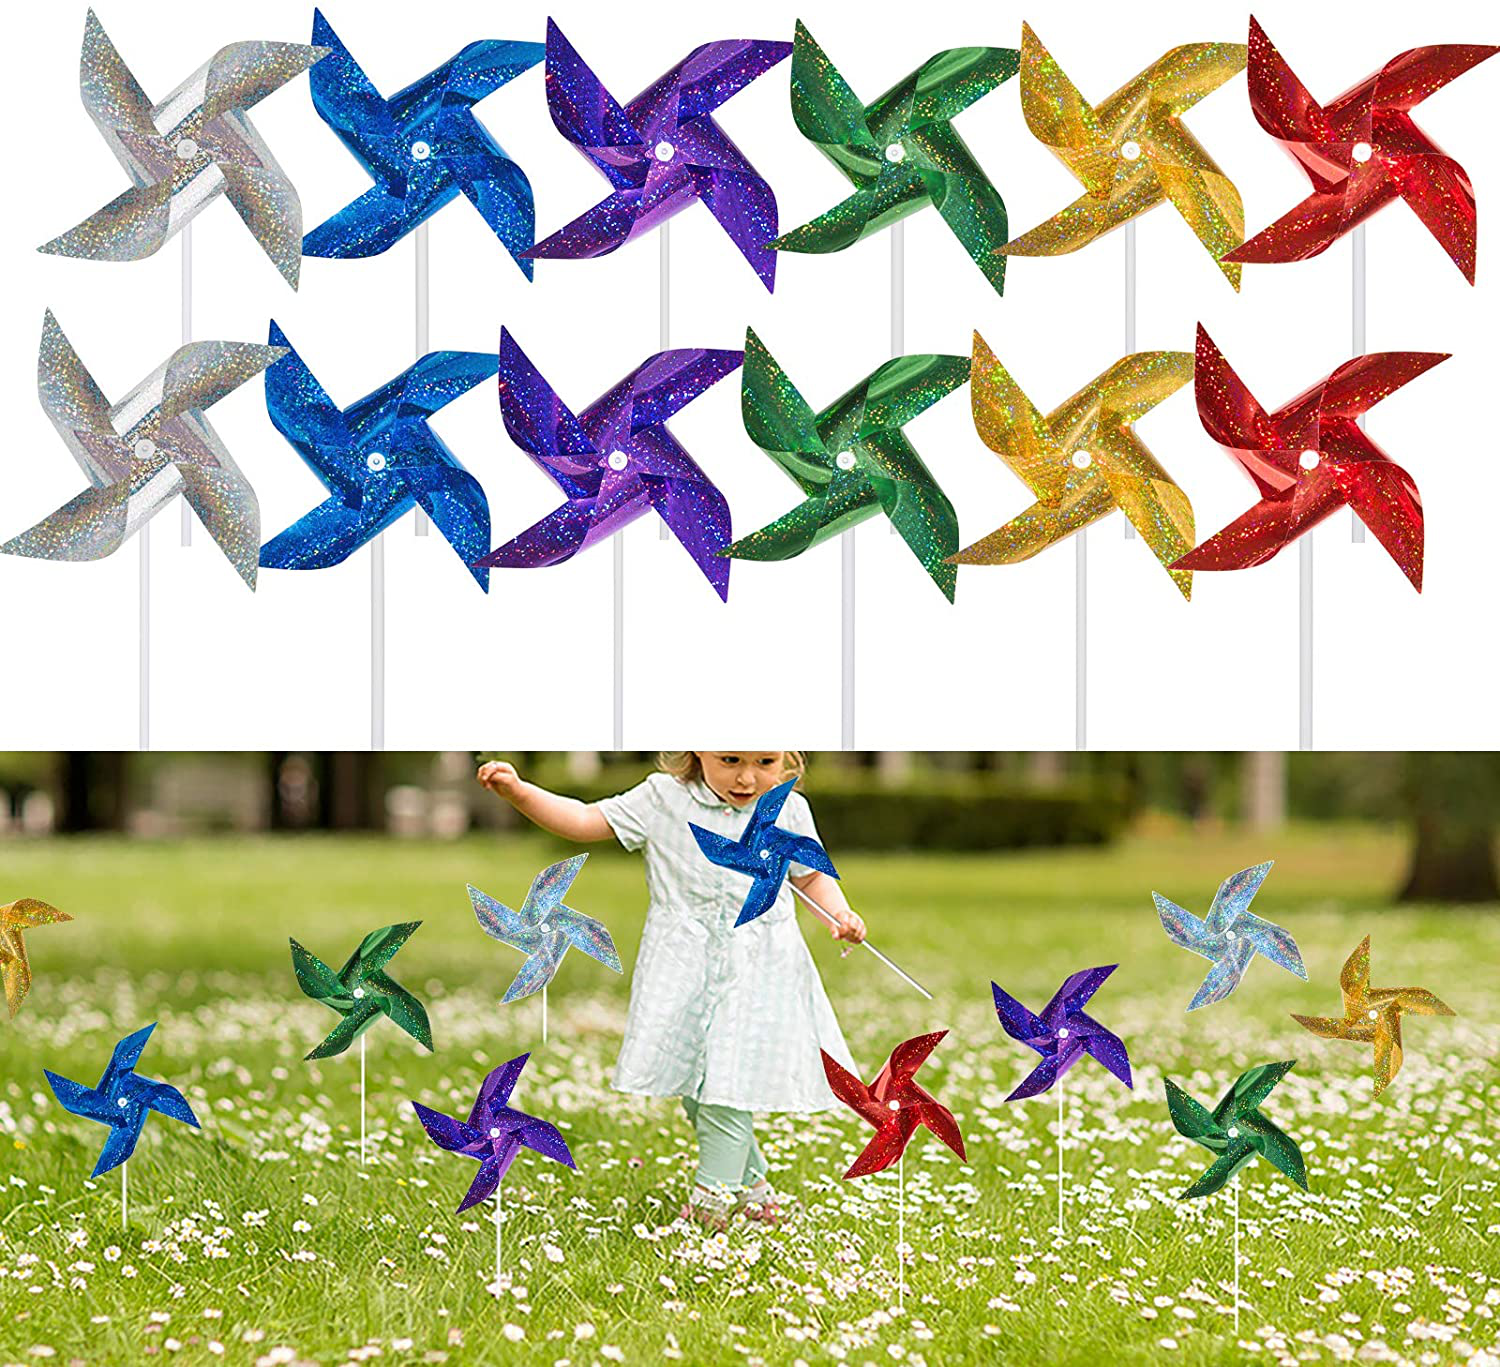 Tsocent Pinwheels (Pack of 12) - Toy Wind Spinners and Party Favors Gifts for Ki